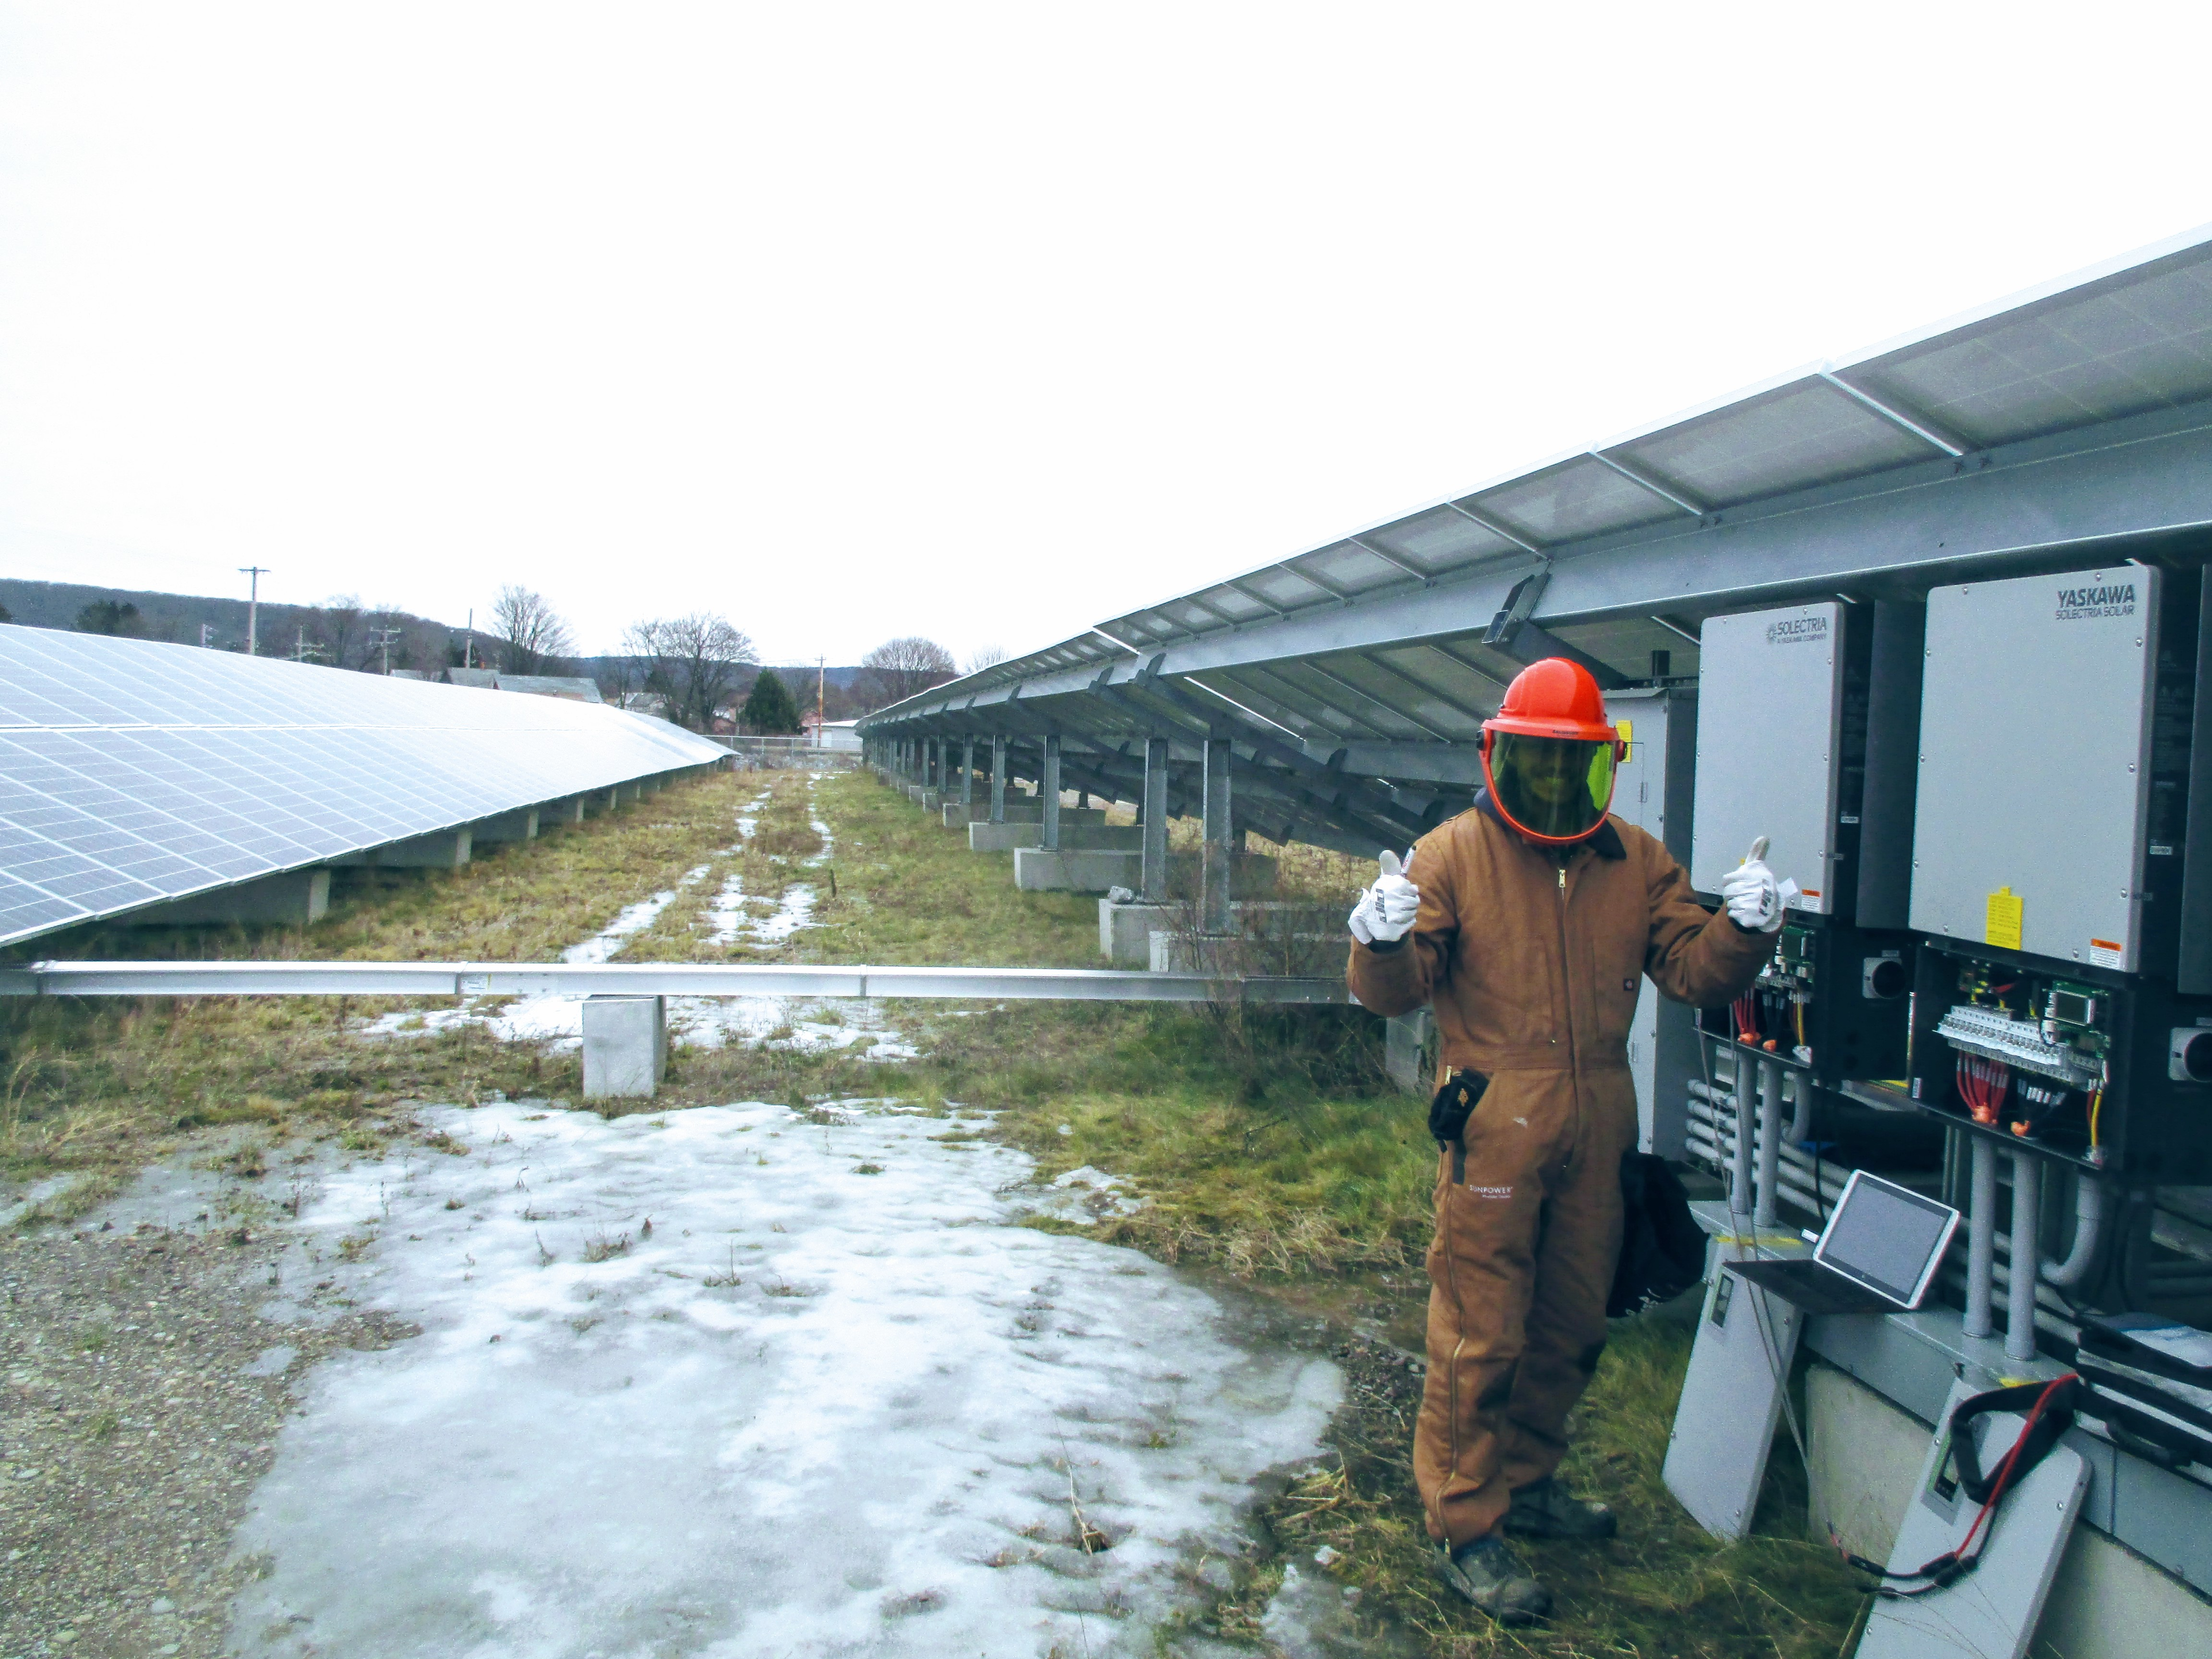 commissioning a 7 MW system